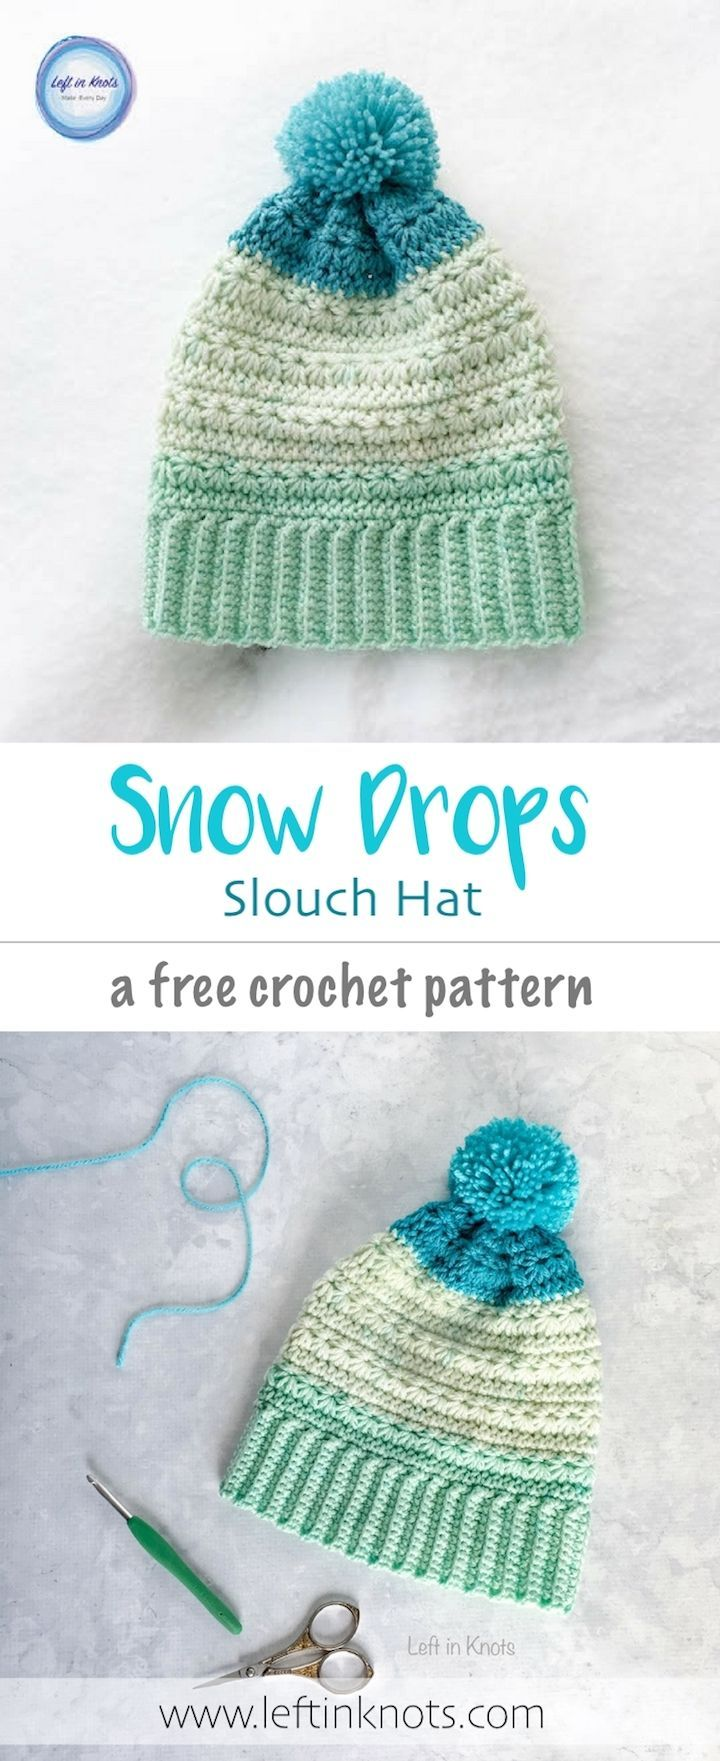 The Snow Drops Slouch Hat works up with stunning texture and uses less than one cake of Caron Cakes yarn (or your preferred worsted weight yarn)!  This free crochet pattern was designed to match my popular Snow Drops Mod Scarf.  I also have aright and left handed video tutorial to teach you how to crochet the star stitch #freecrochetpattern #crochethat #caroncakes